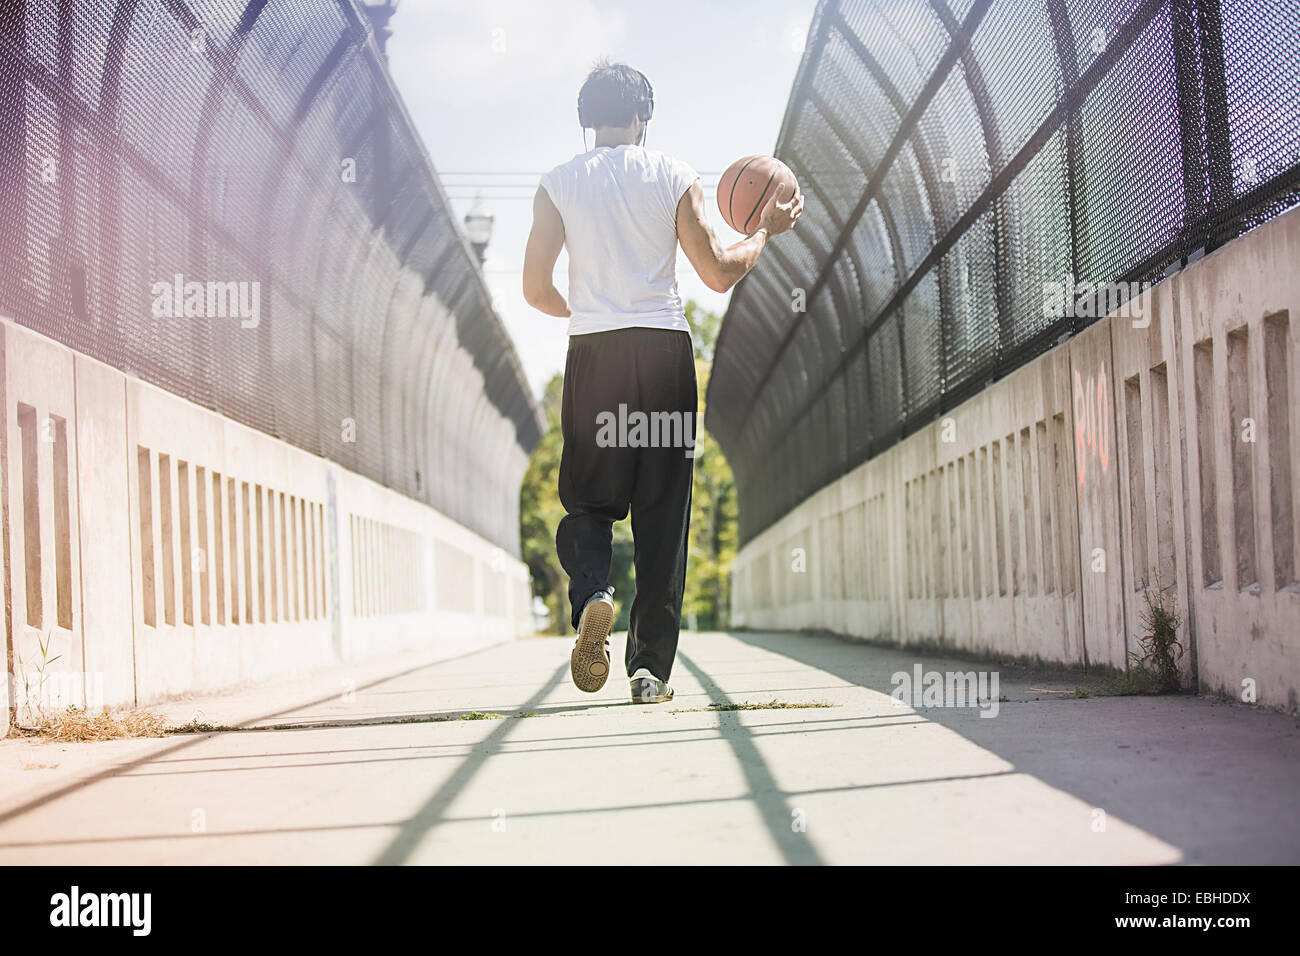 Rear view of young male basketball player walking along footbridge carrying ball - Stock Image